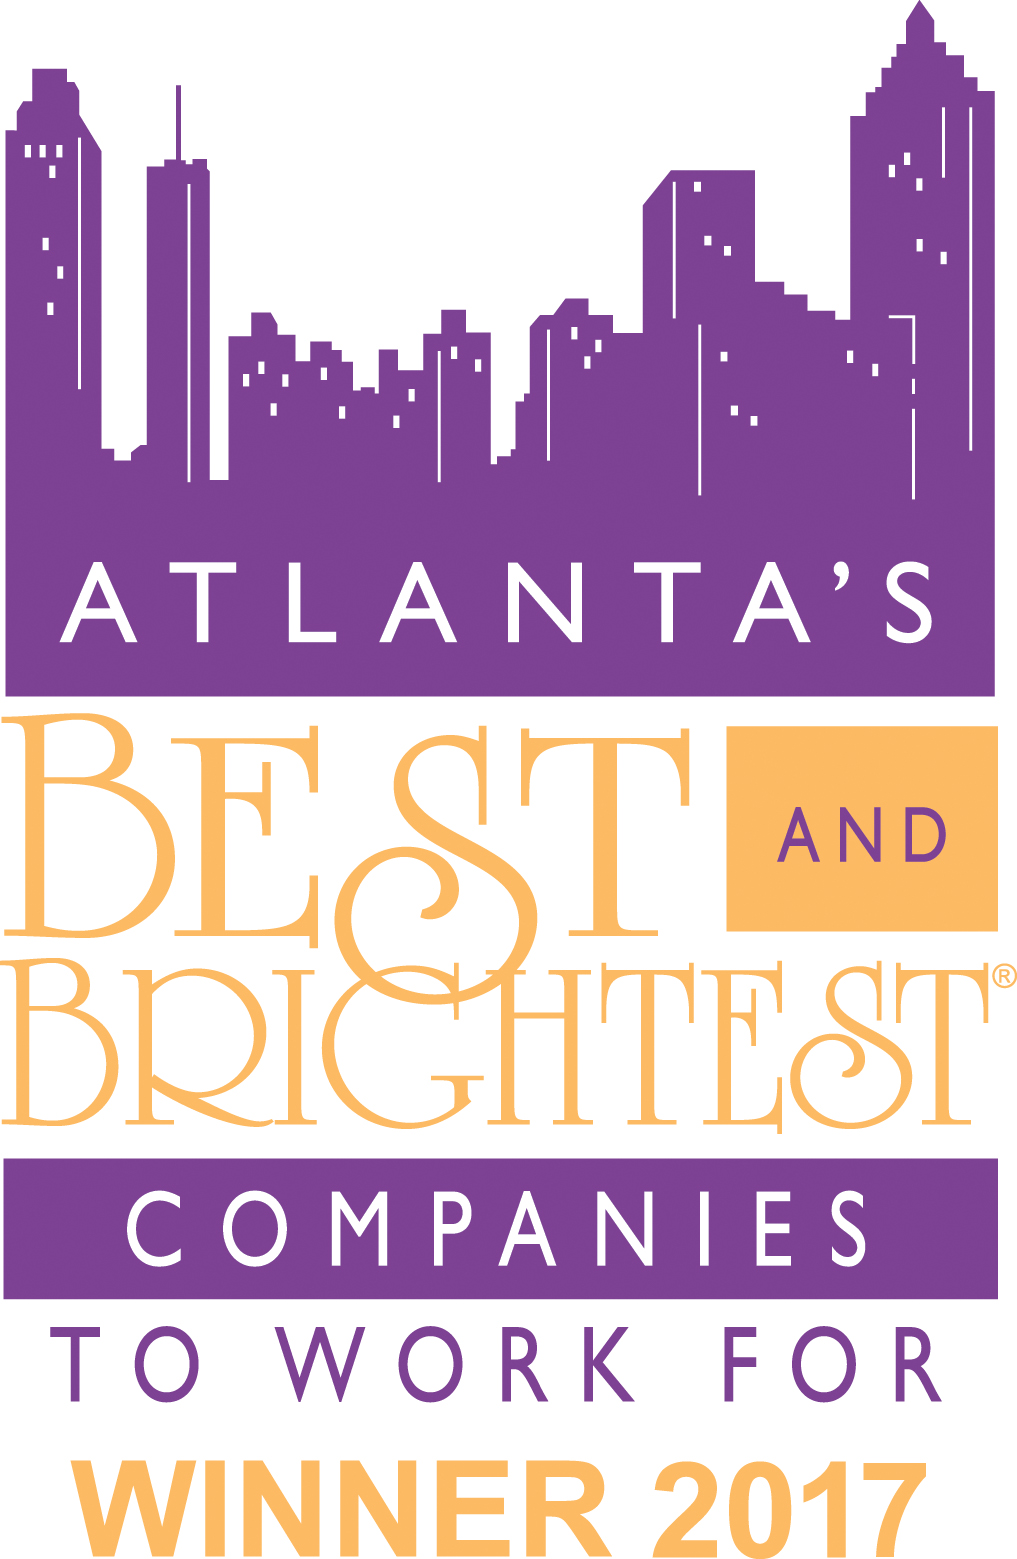 Atlanta's Best and Brightest Companies to Work For® logo